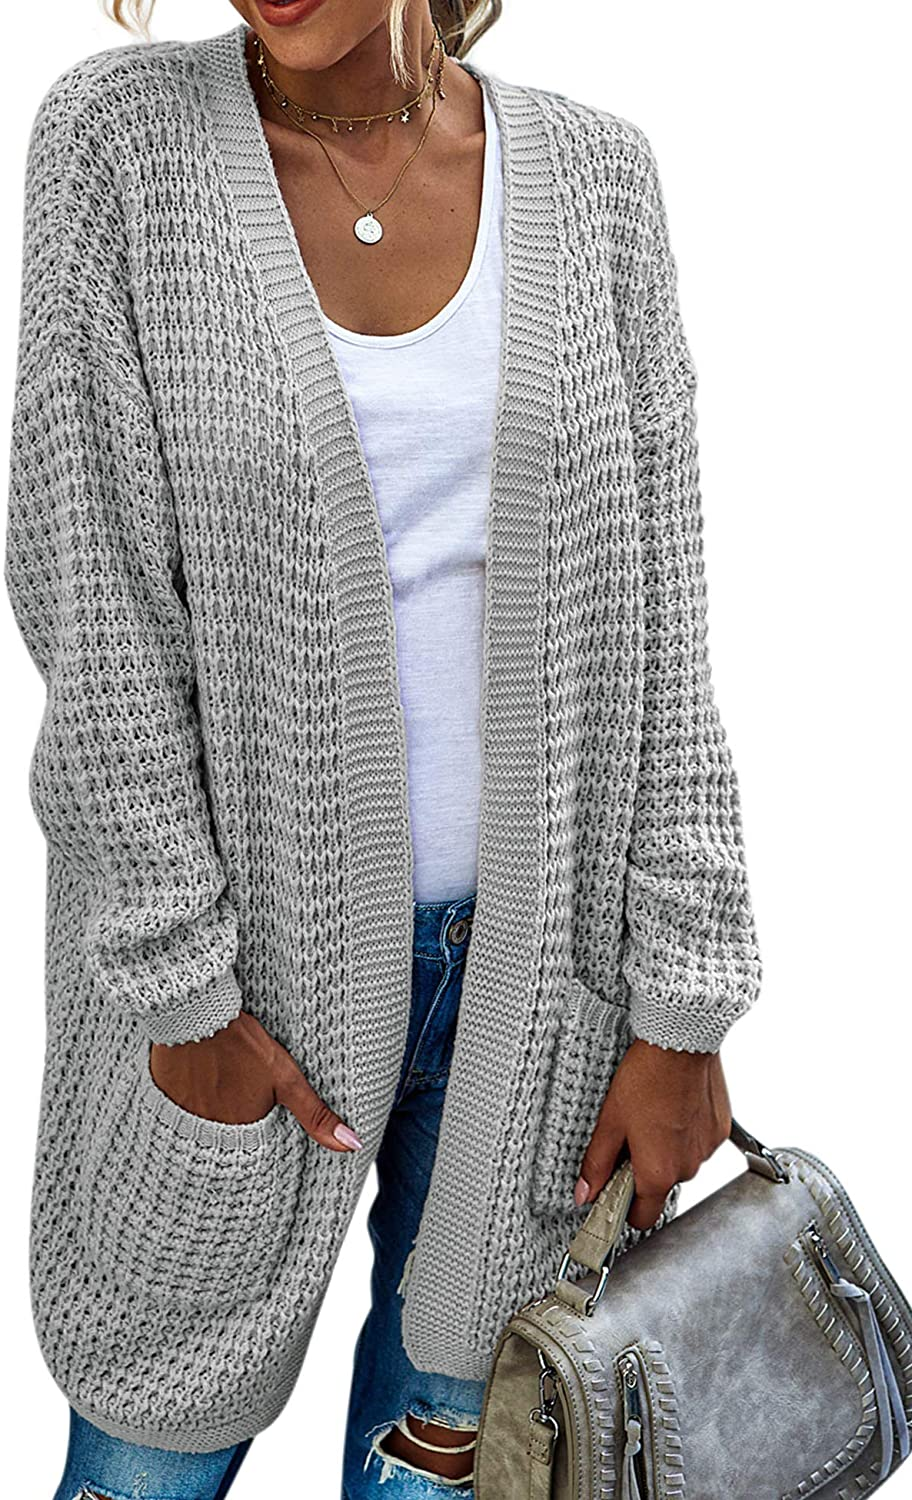 Hibluco Womens Color Block Striped Draped Kimono Cardigan with Pockets Long Sleeve Open Front Casual Knit Sweaters Coat